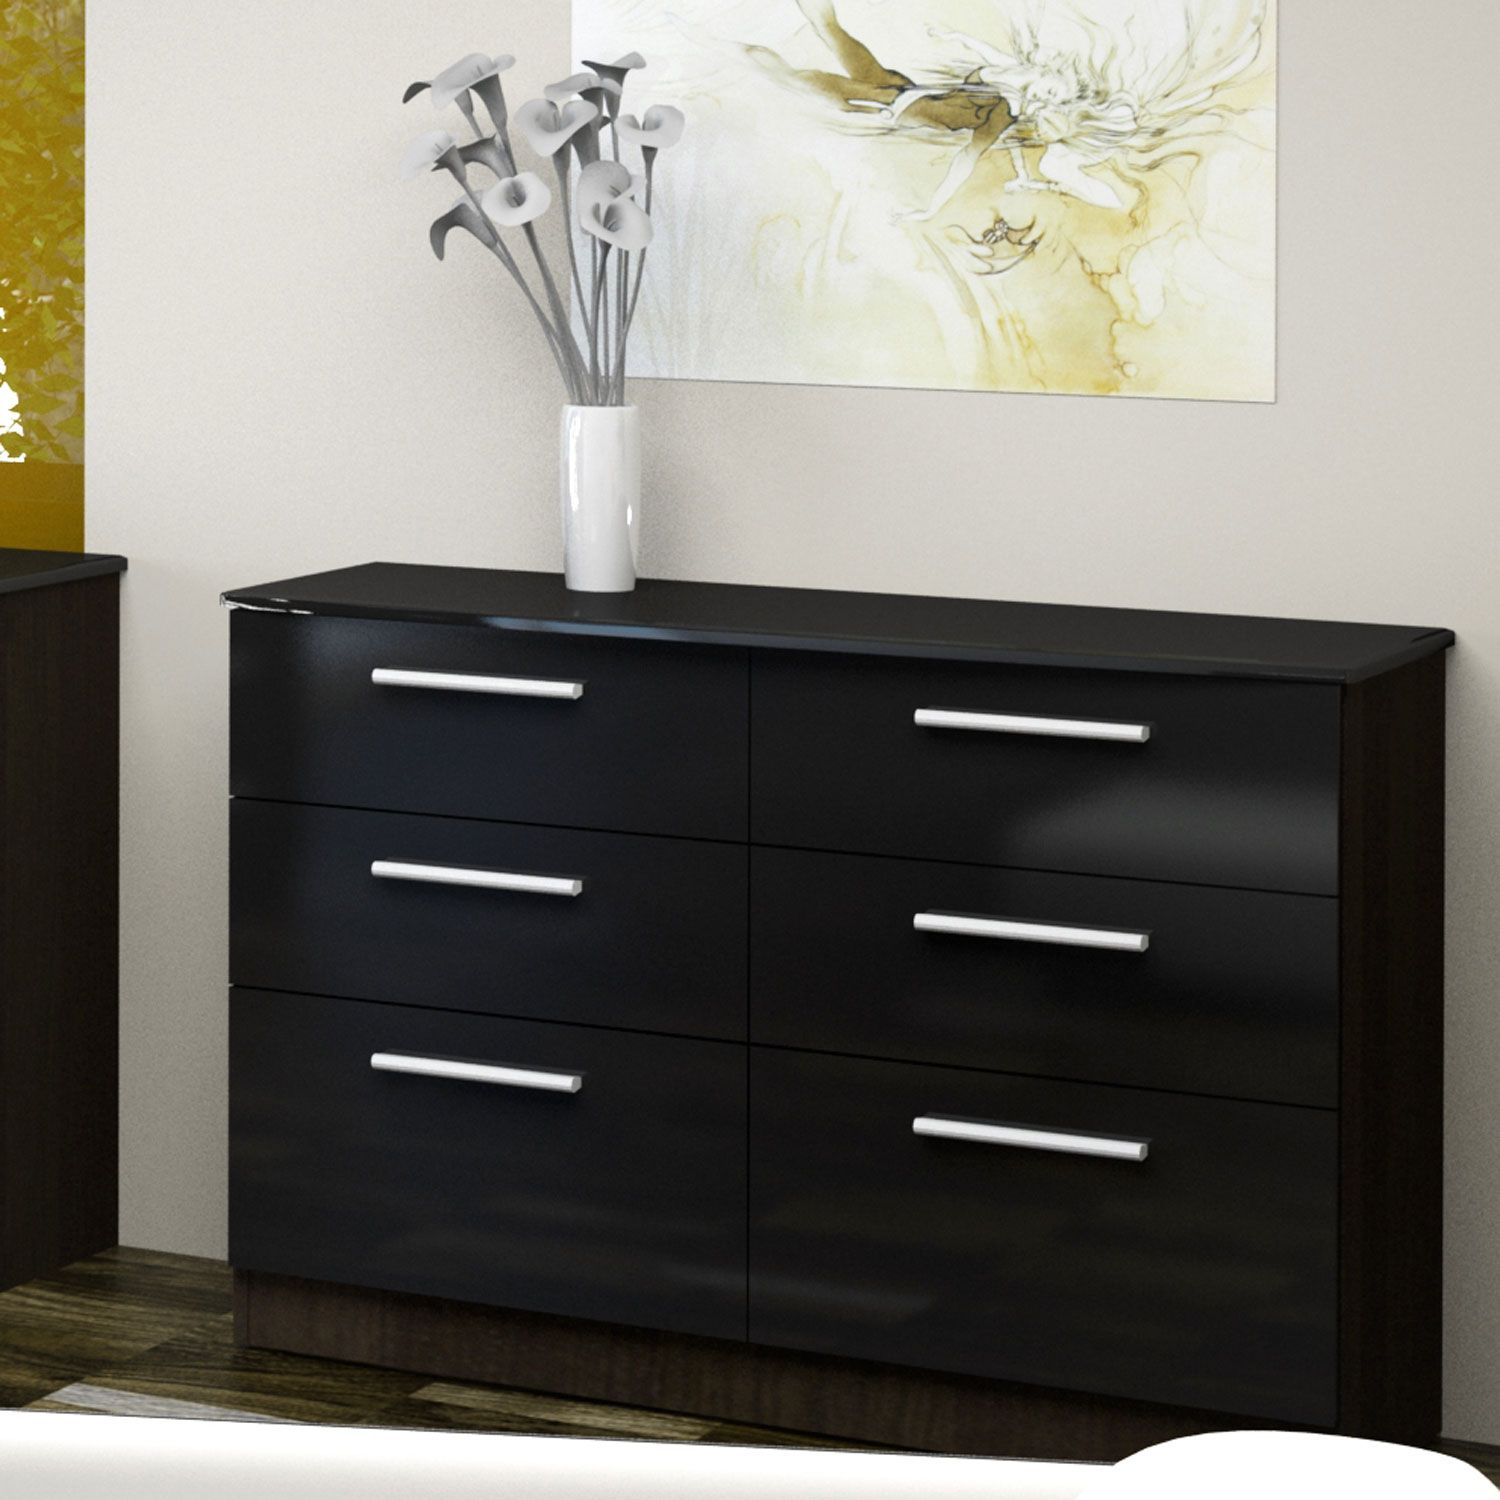 The Chester High Gloss Black And Ash 6 Drawer Chest Furniture Bedroom Of Drawers At Range